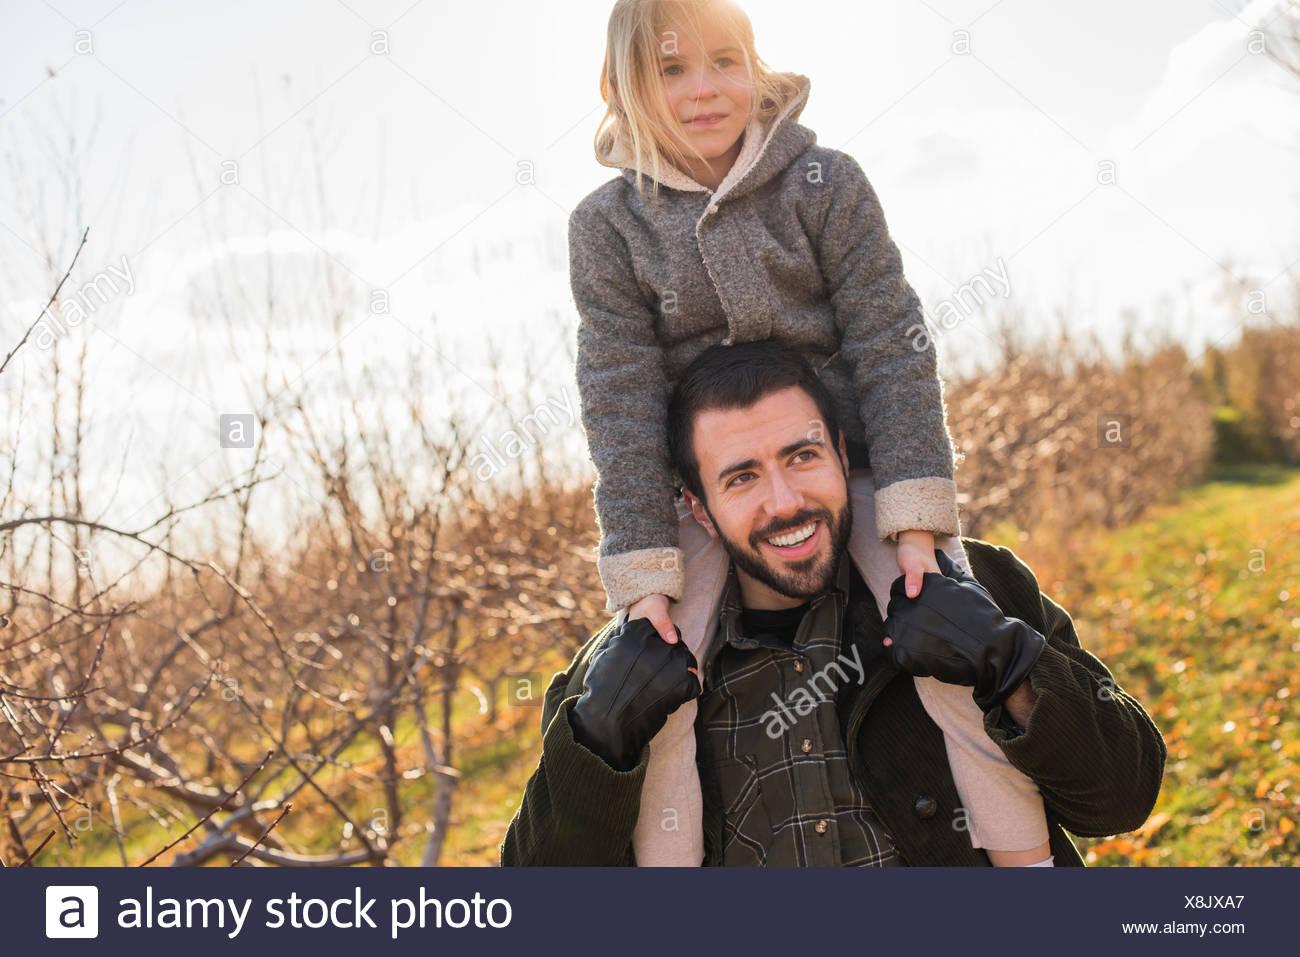 A man giving a child a ride on his shoulders. - Stock Image